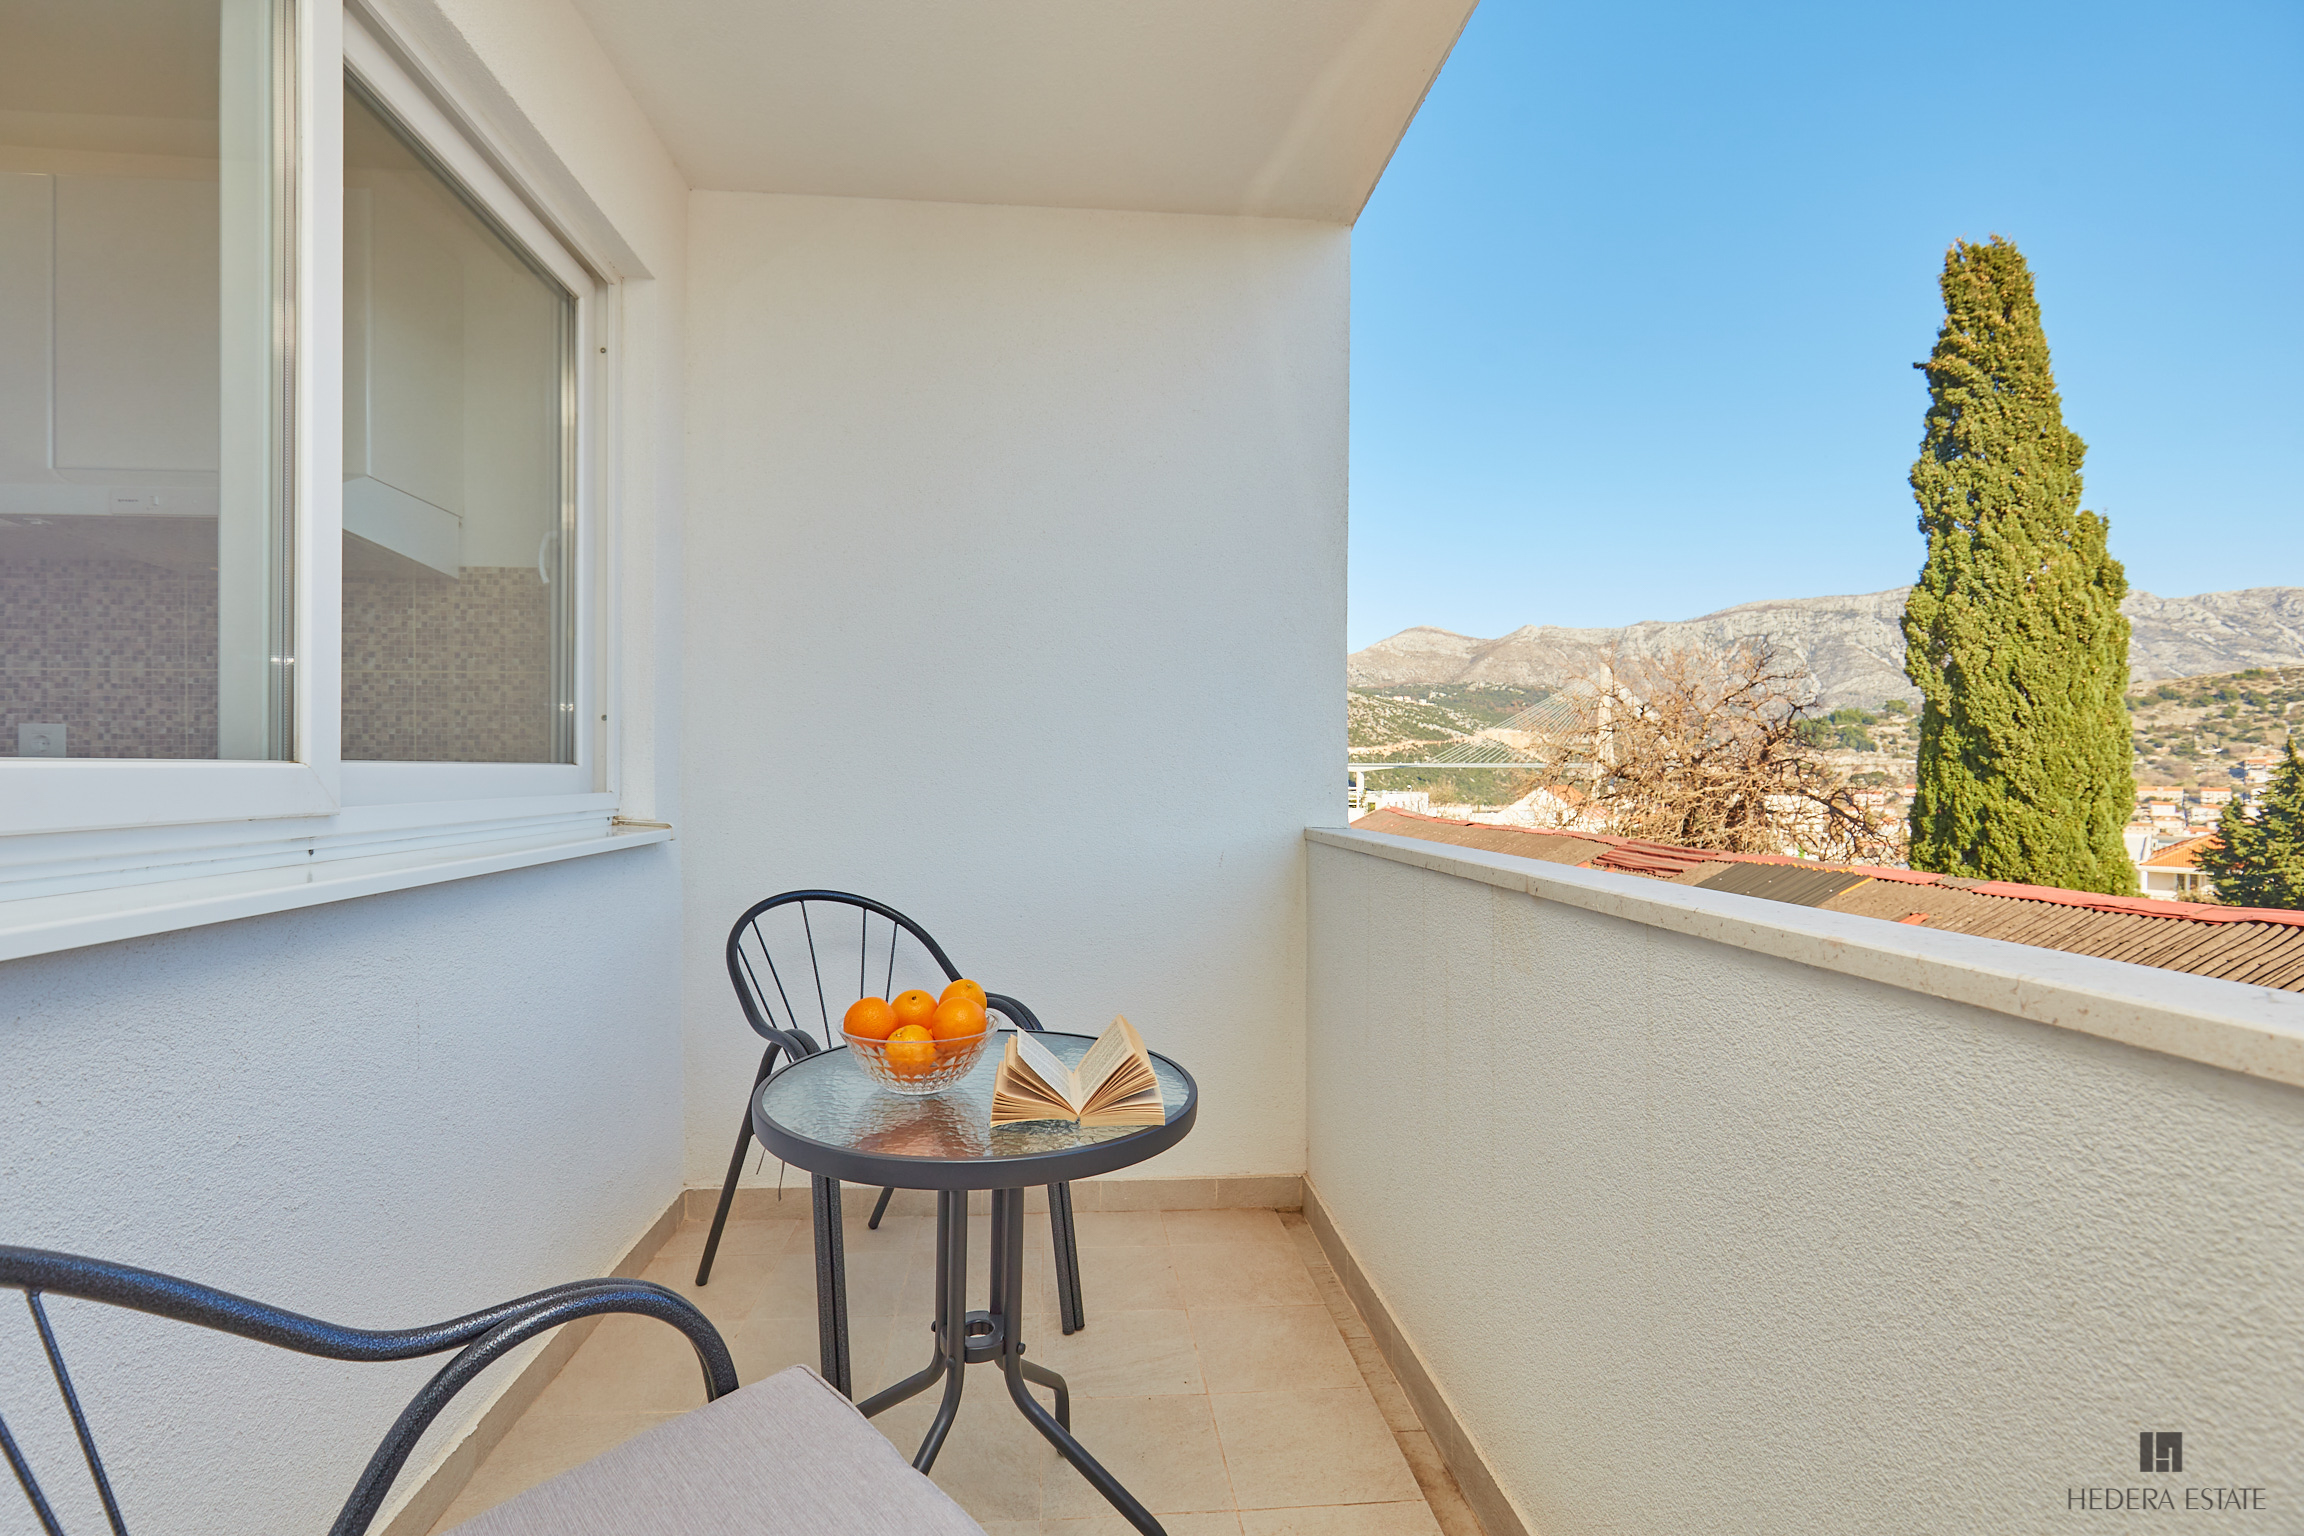 <p>Sleeps 2 (+2)<br />1 bedroom<br />1 bathroom<br />Kitchen, dining area and living room<br />Balcony with sea view <br />Distance to Old Town: 10 minutes by bus<br />Distance to Lapad bay:5 minutes walk</p>